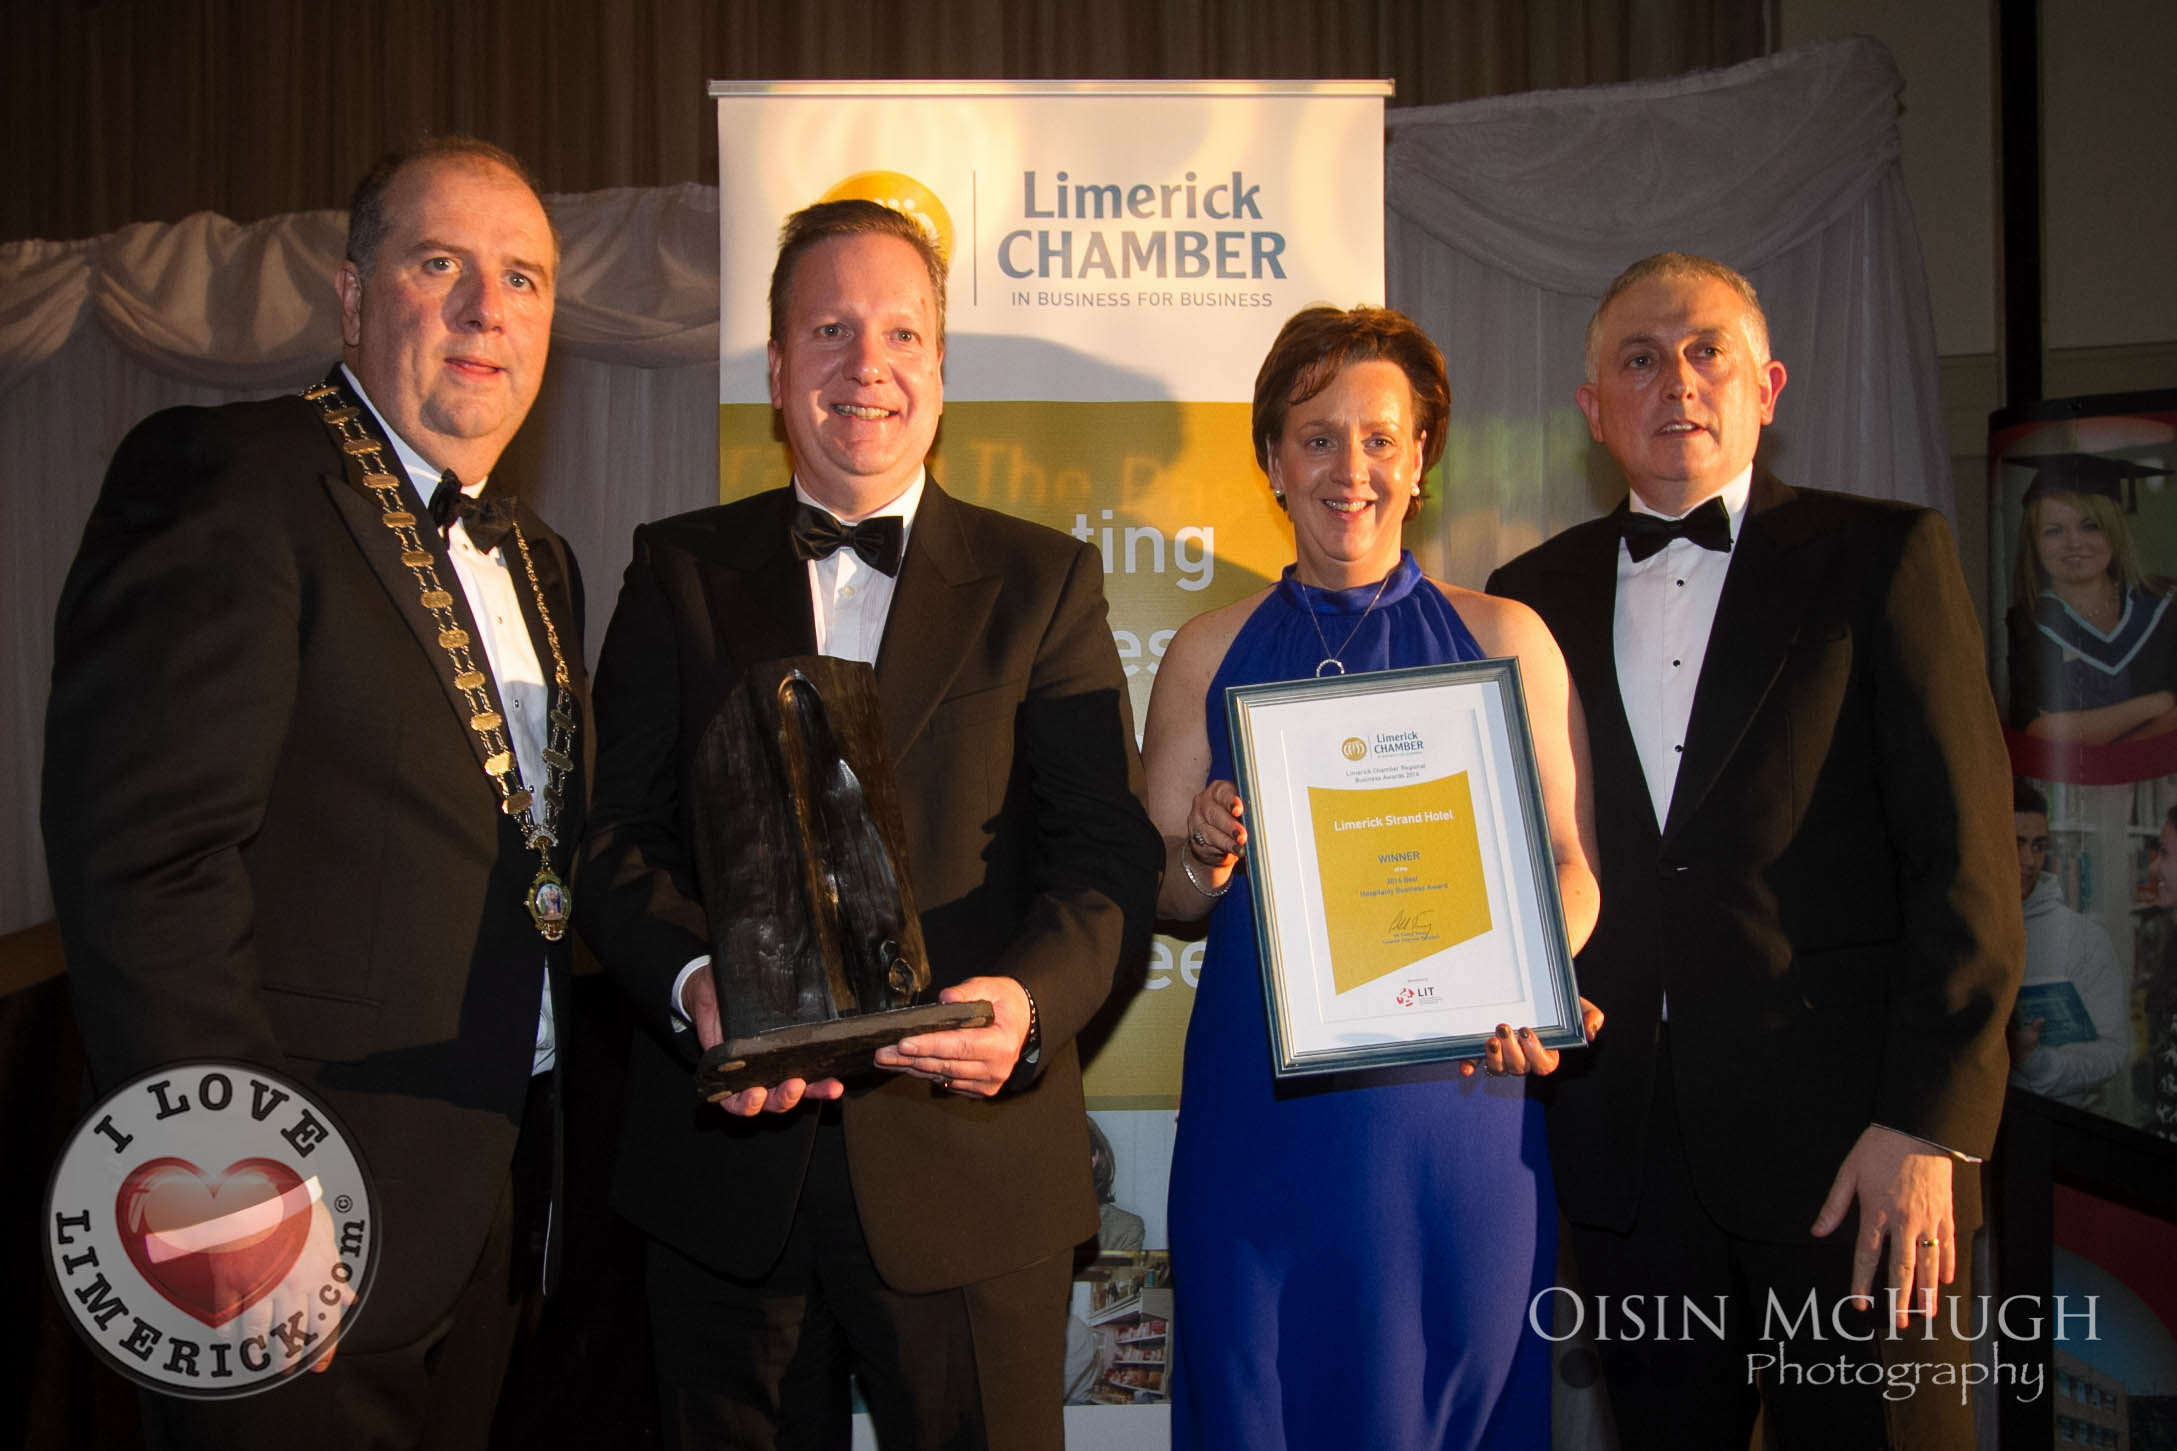 TOP LIMERICK CHAMBER AWARD 2014 GOES TO GRASSLAND AGRO